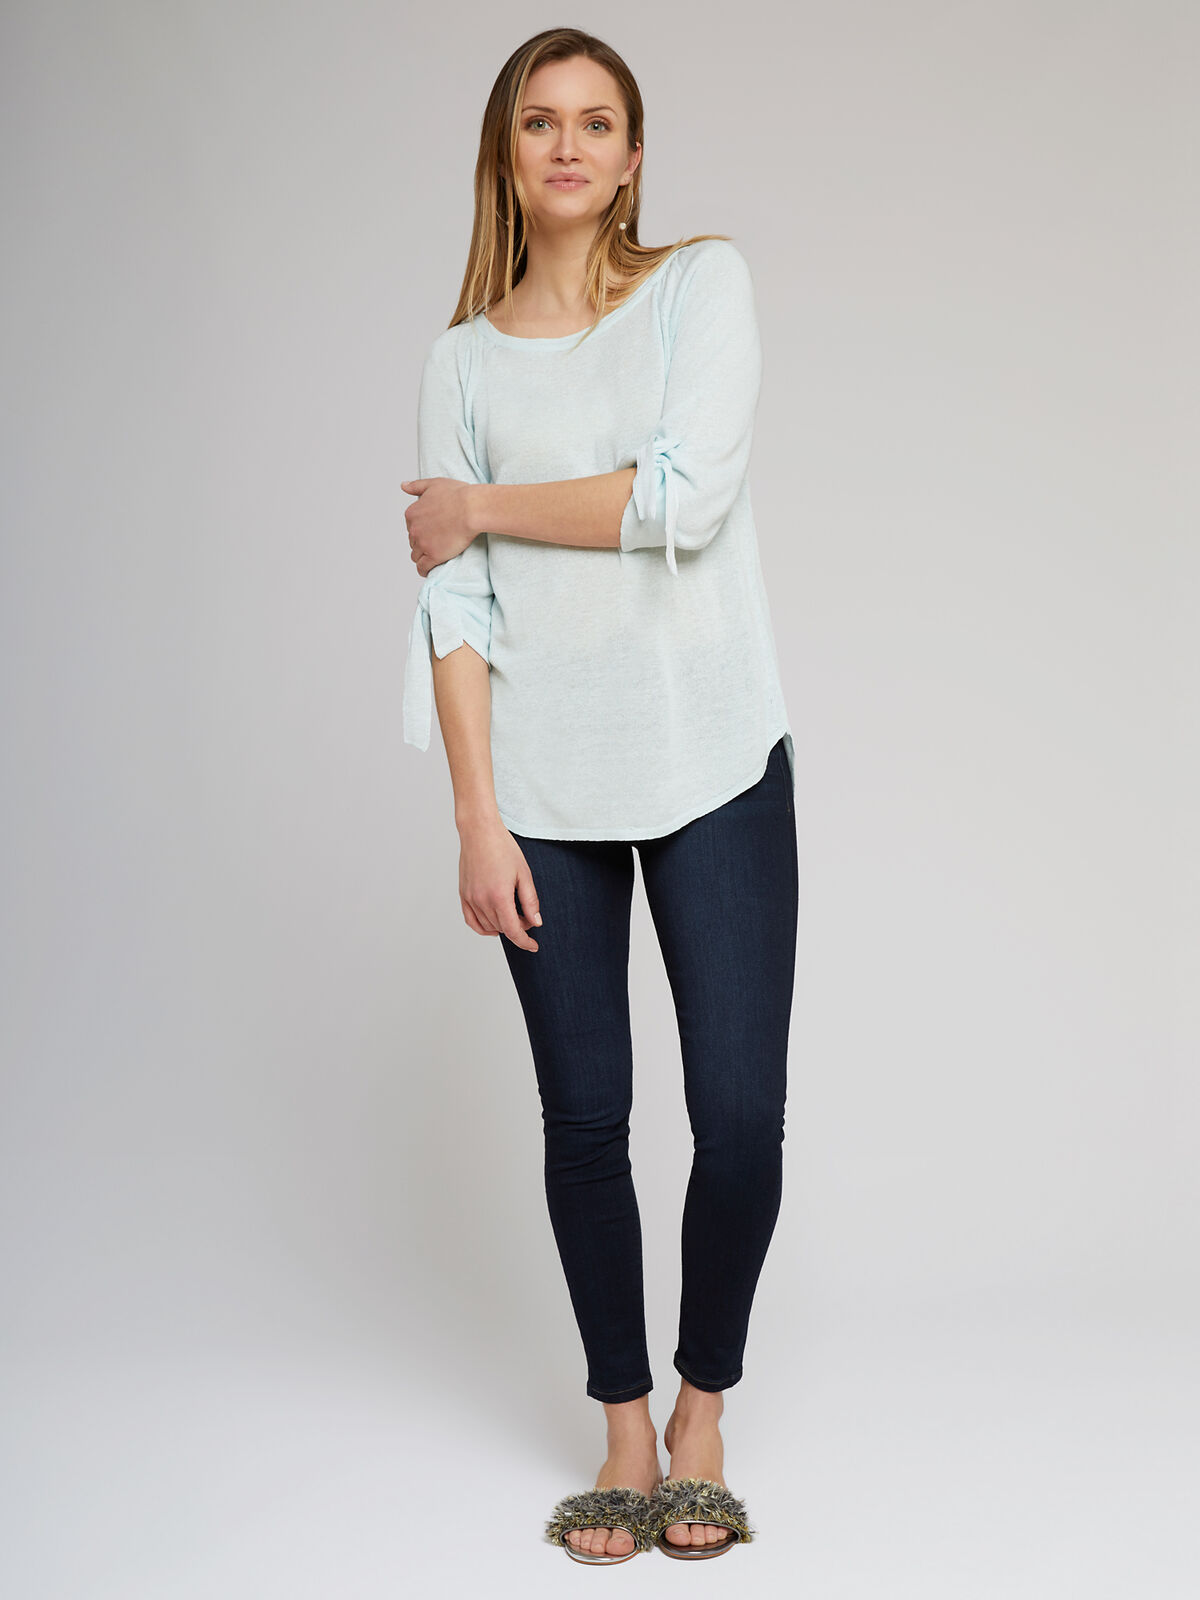 Casual Friday Top